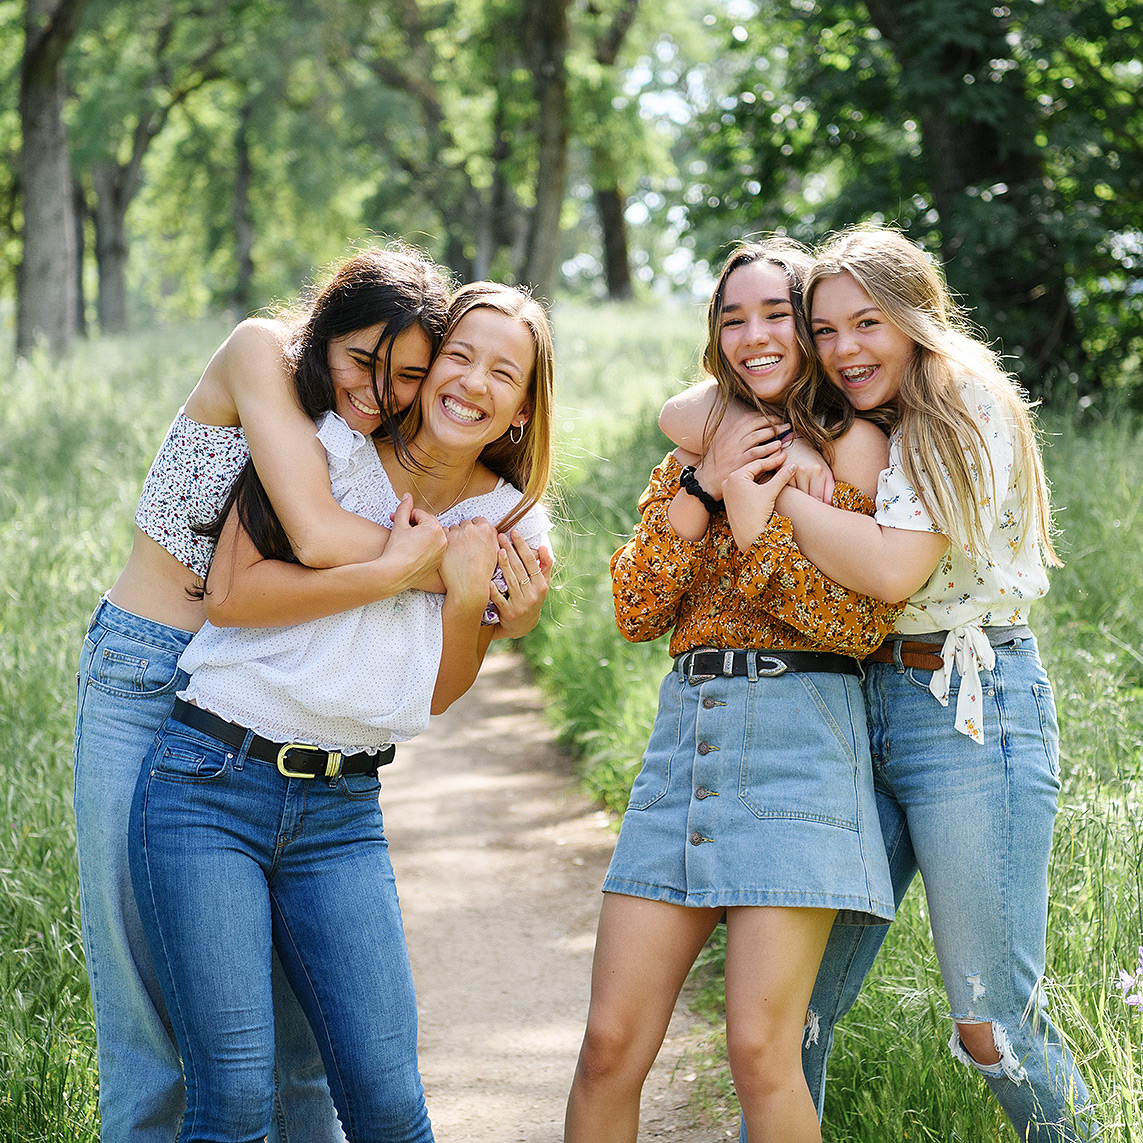 Friends hugging and smiling outdoors in park among green grass in Folsom